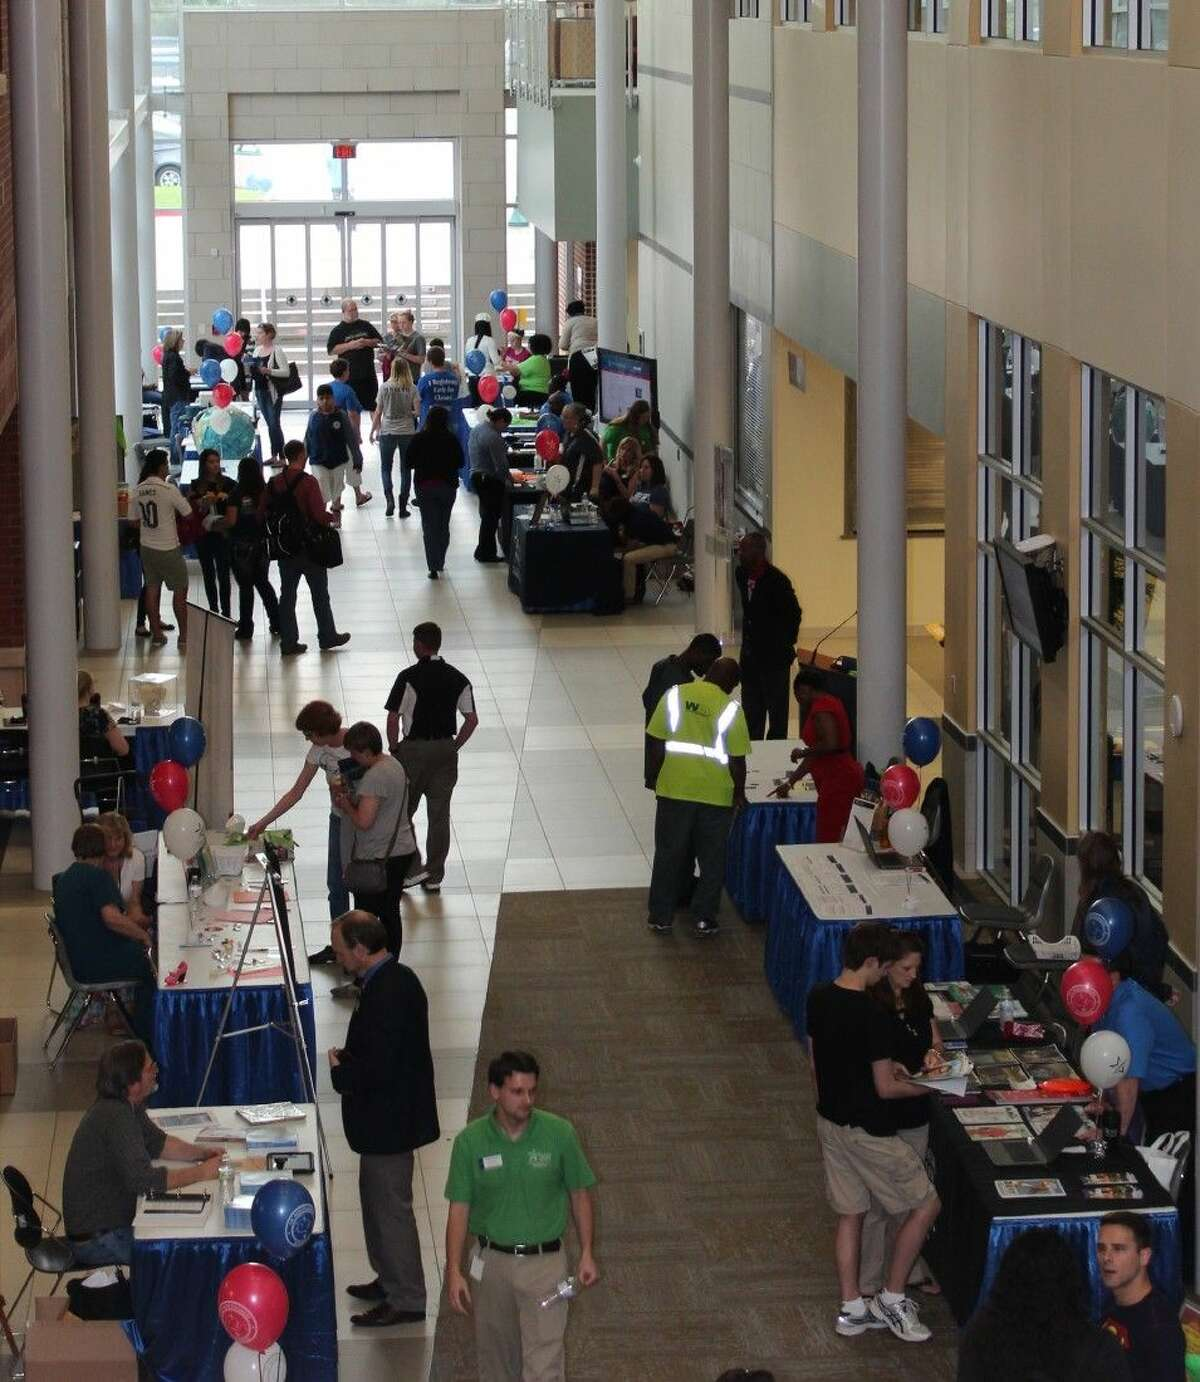 Attendees learn about all LSC-Montgomery has to offer at Maverick Mania. The open house event will be held Thursday, April 14, from 4-7 p.m., in the atrium of the Health Science Center (Building B).